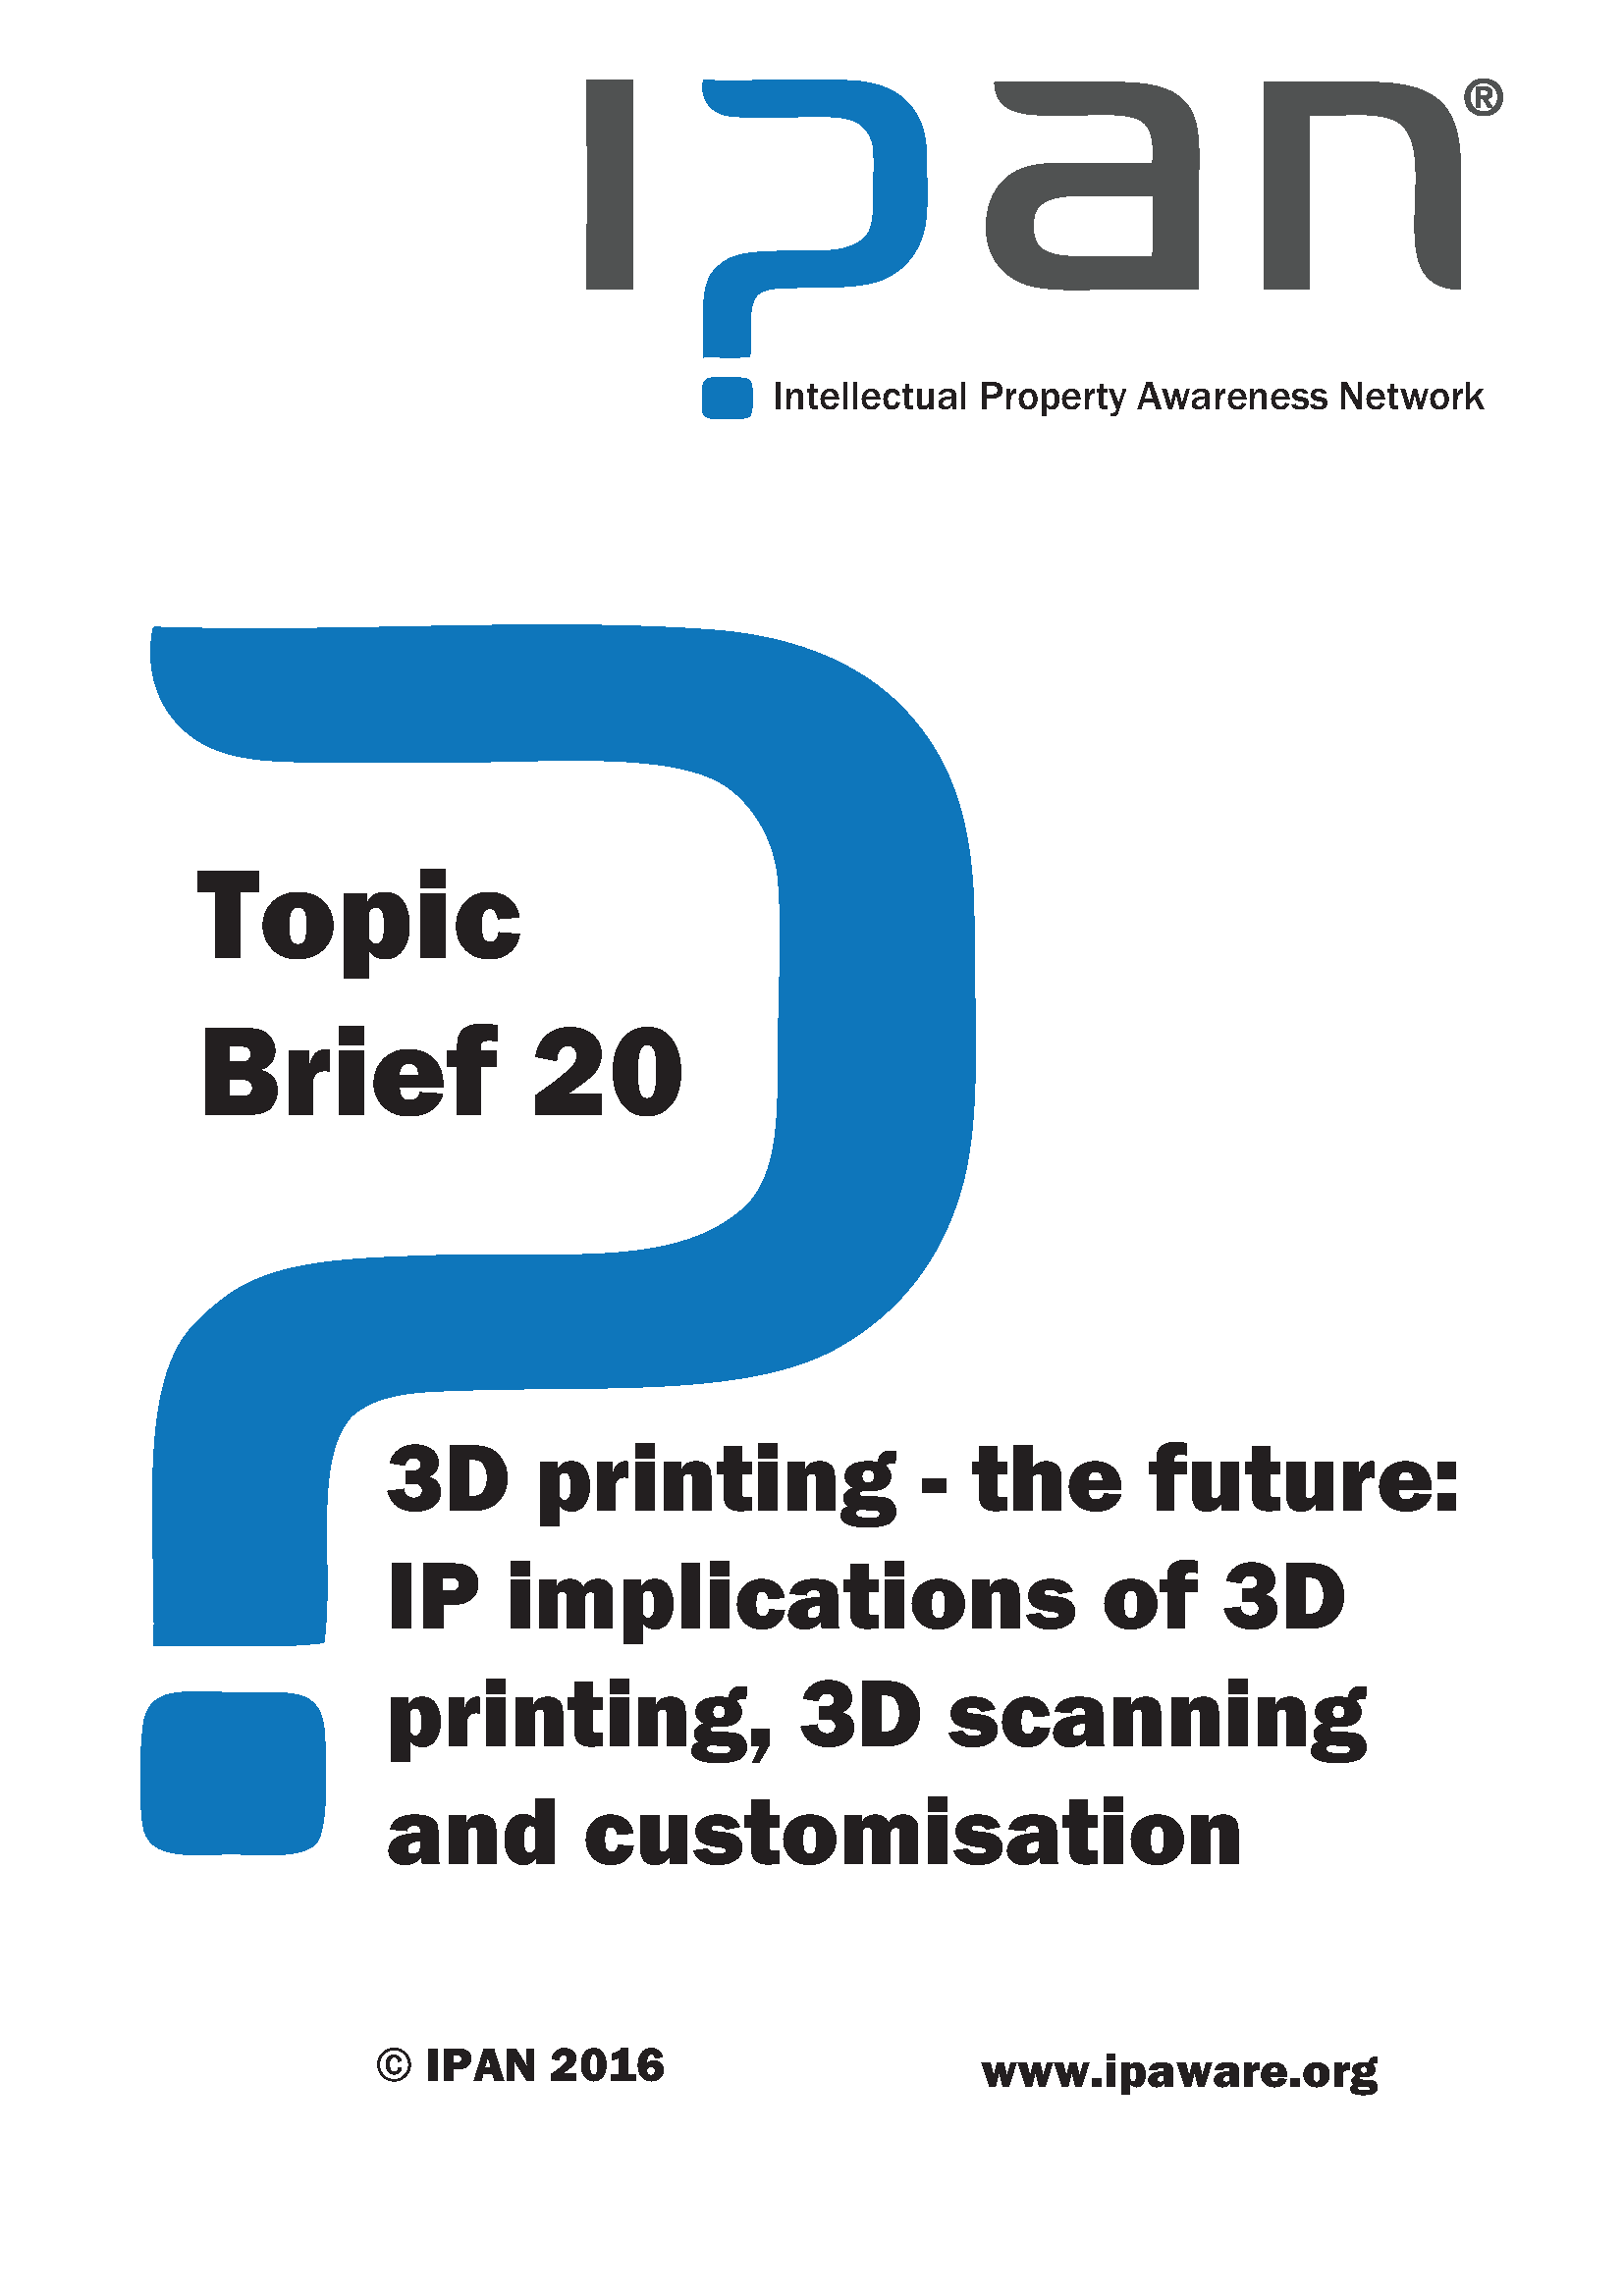 3D printing - IP implications